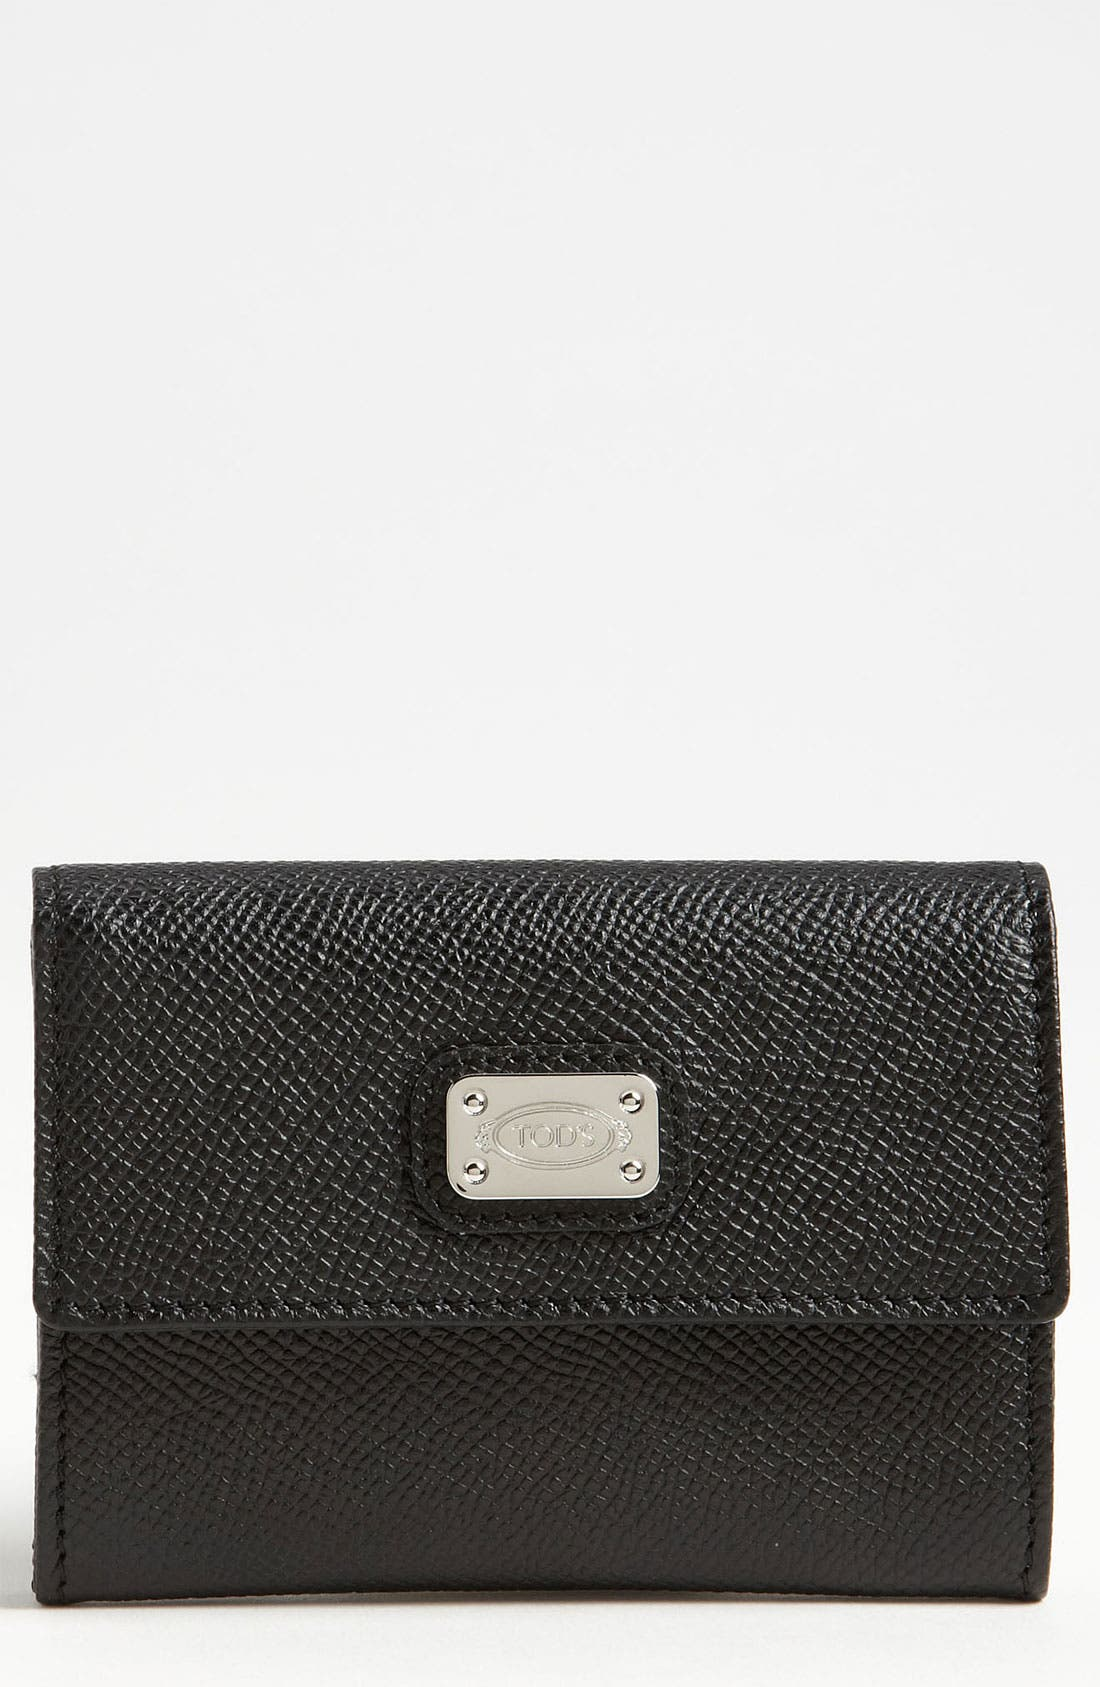 Alternate Image 1 Selected - Tod's 'D Styling - New Mini' Leather Wallet